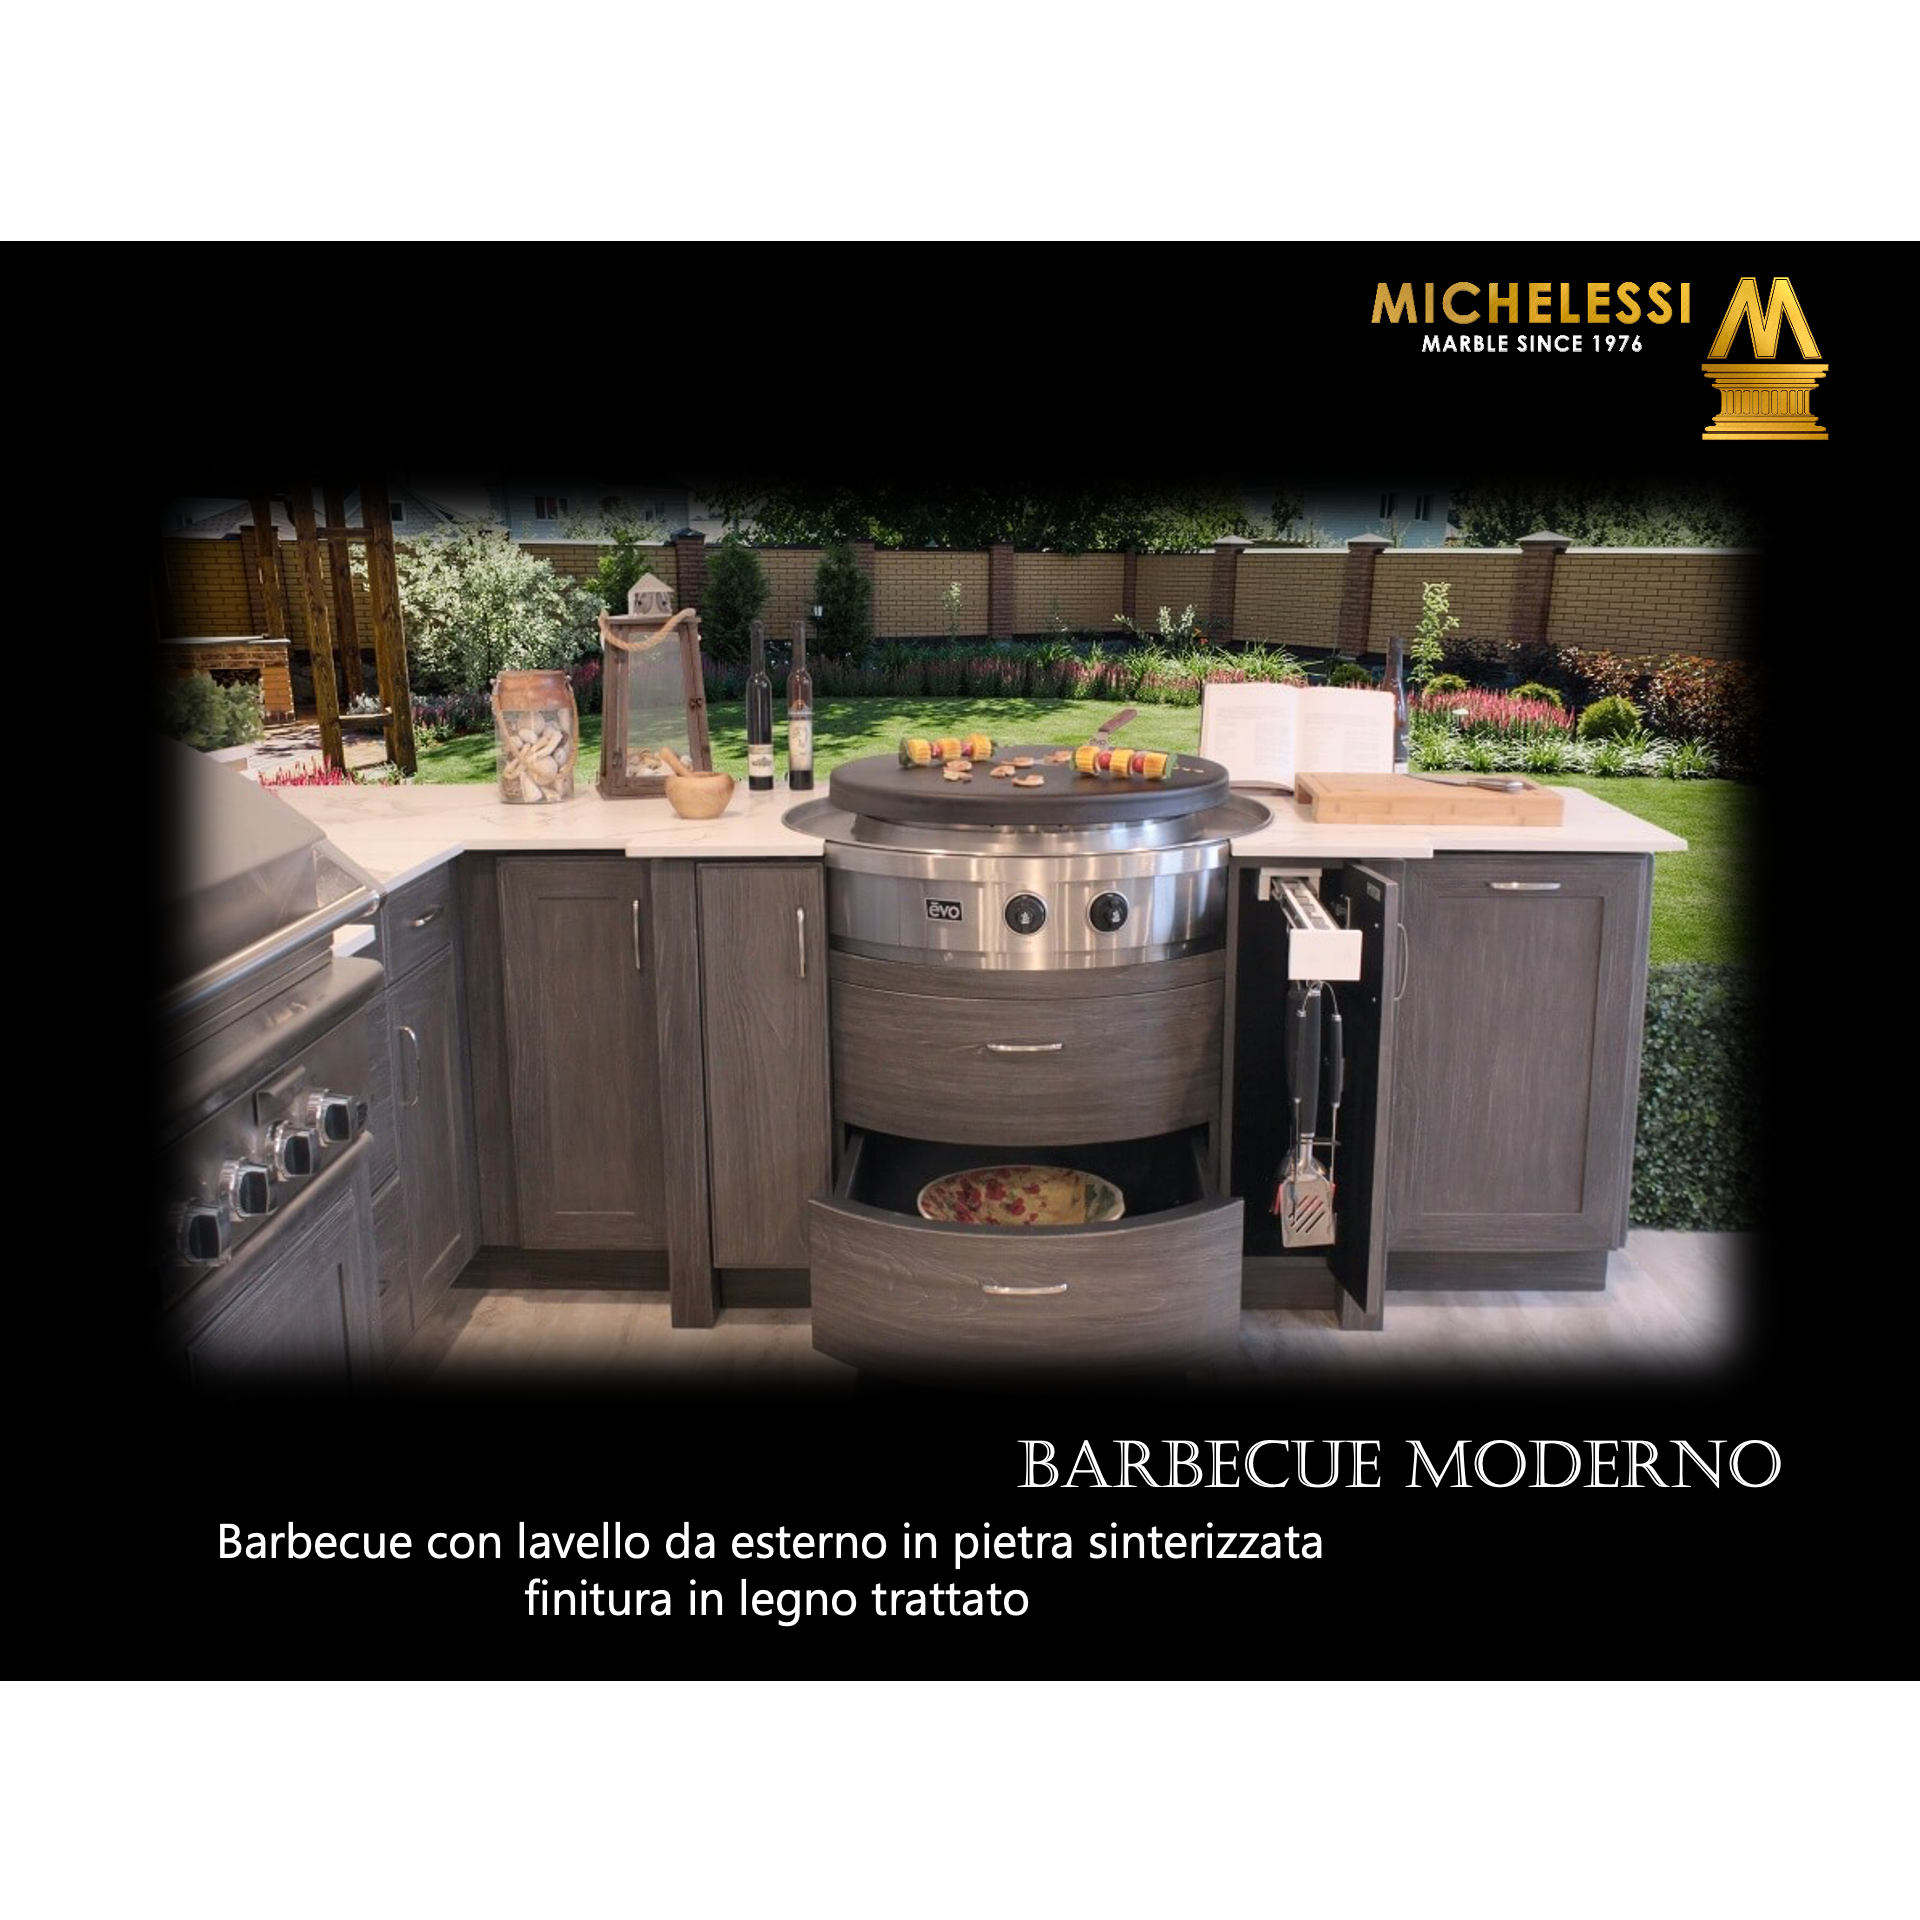 BARBECUE MODERNO